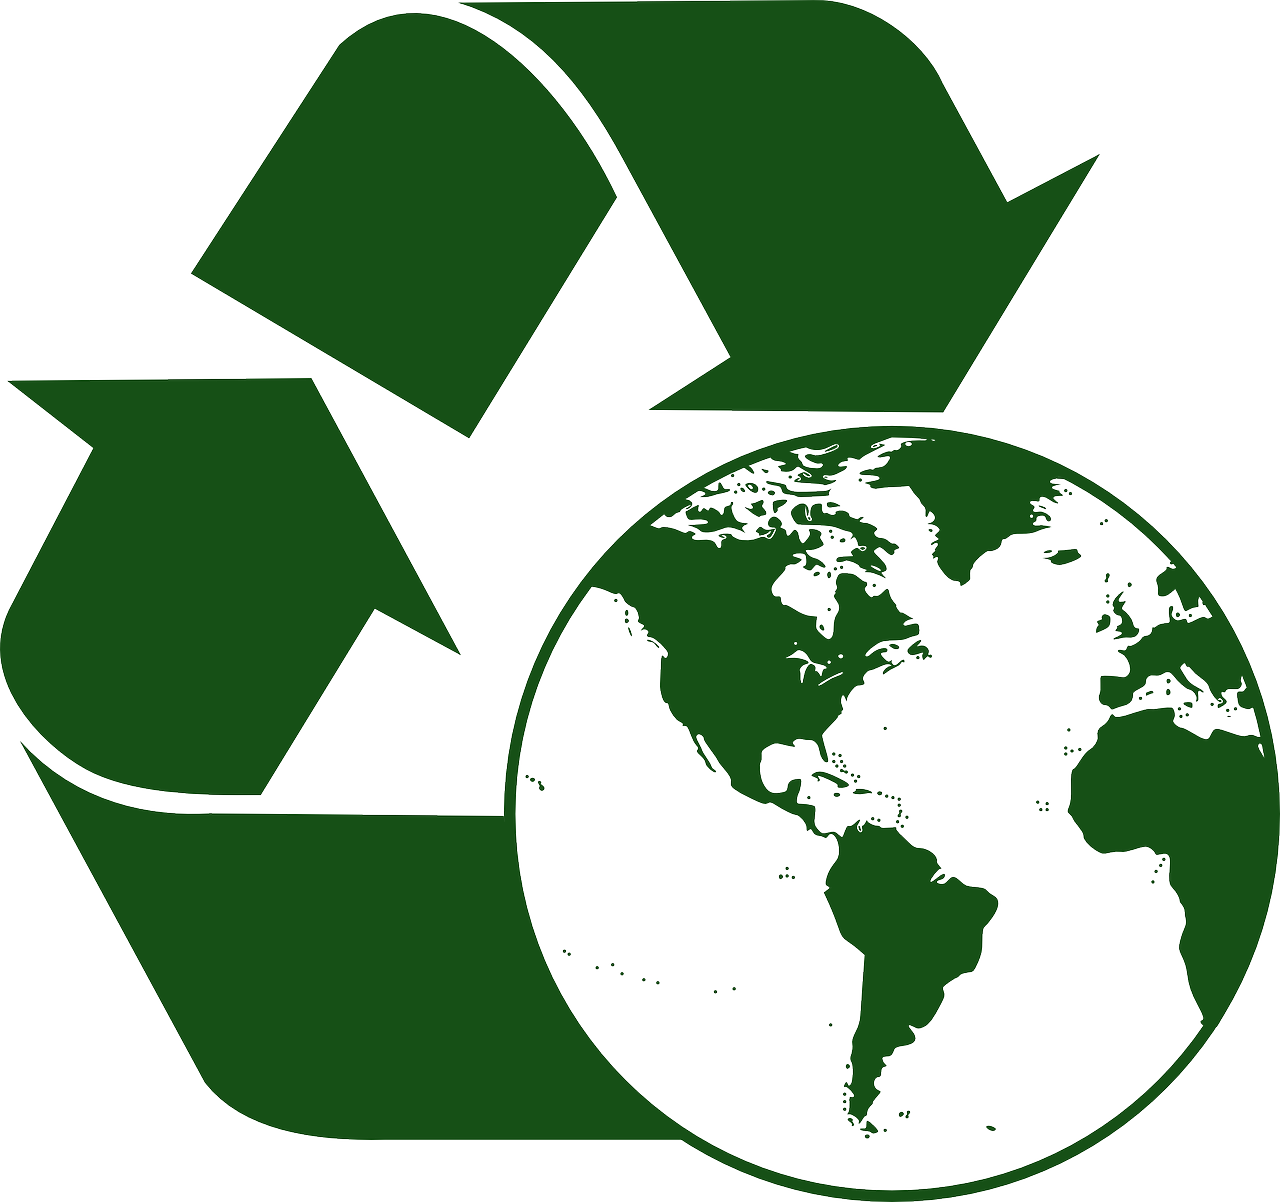 Recycle World Globe Map Download Free Image PNG Image